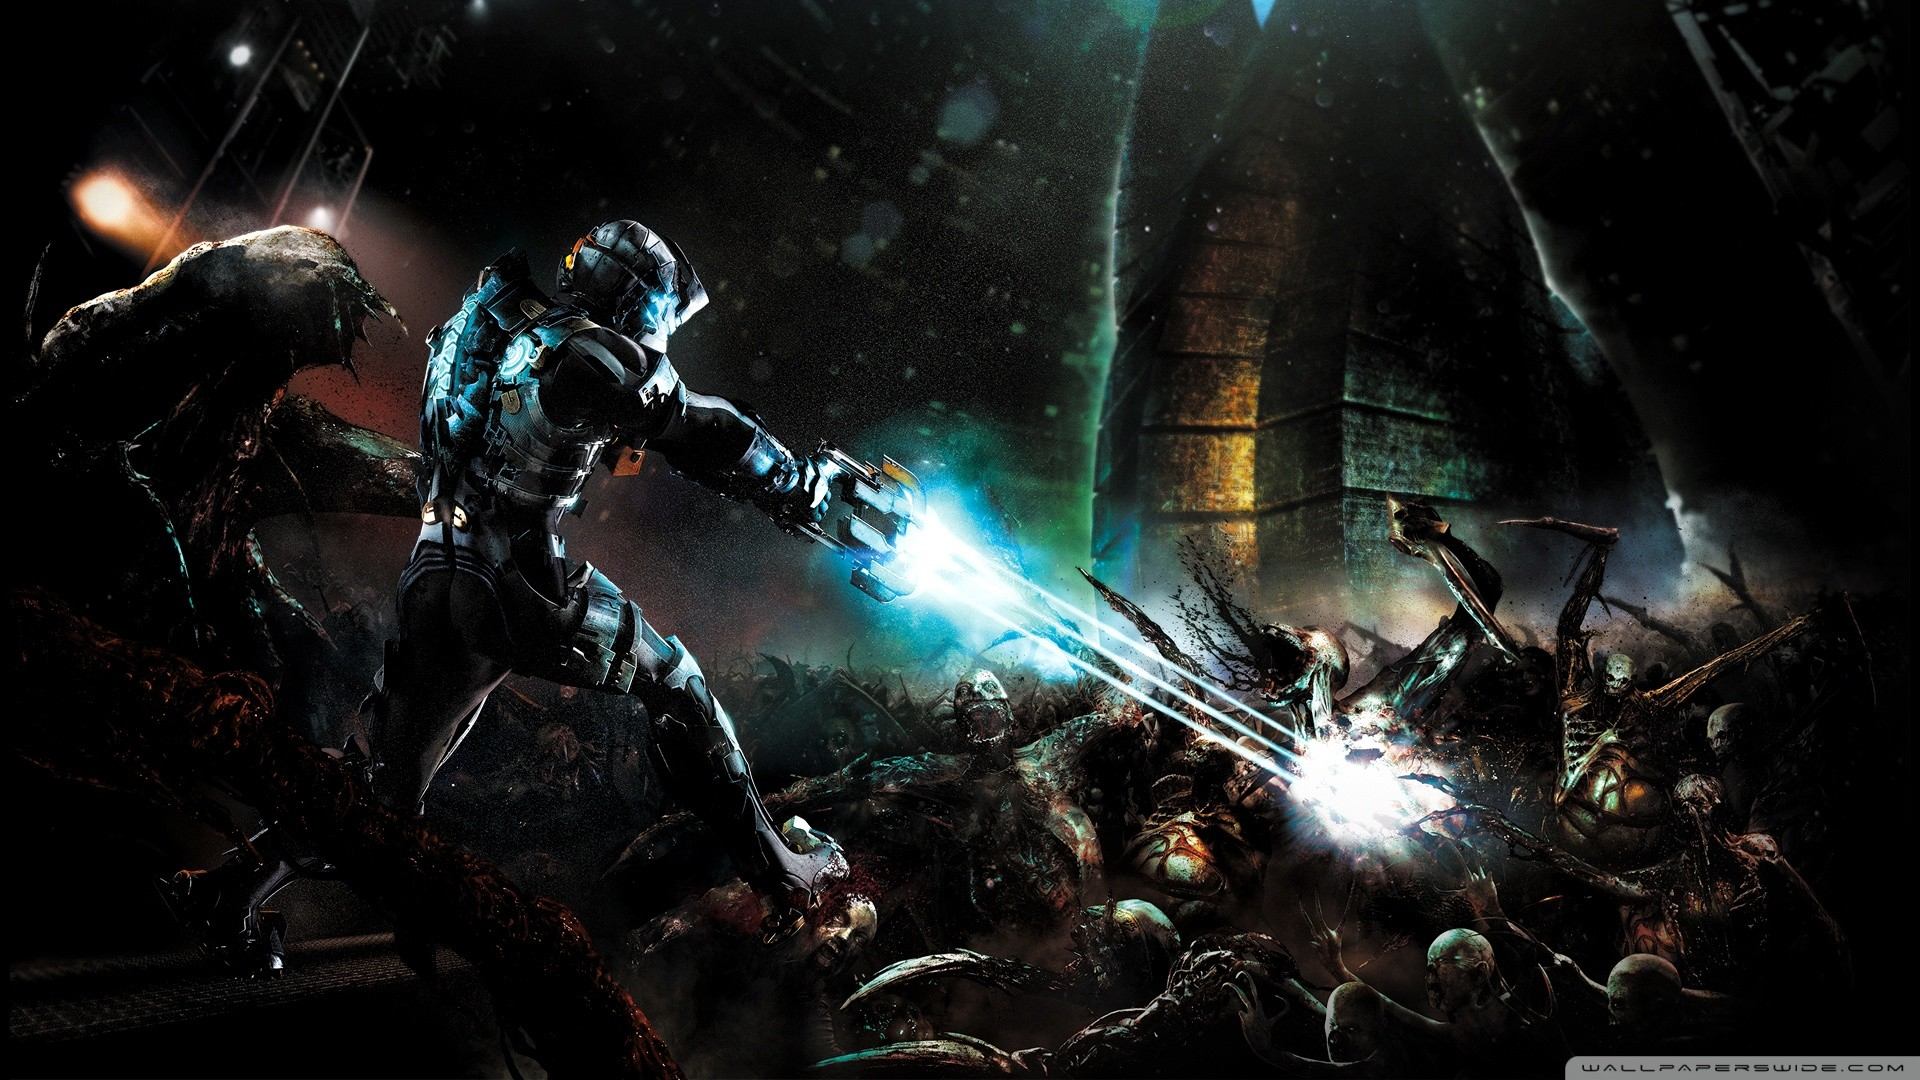 Dead Space 2 Wallpaper Hd 78 Images